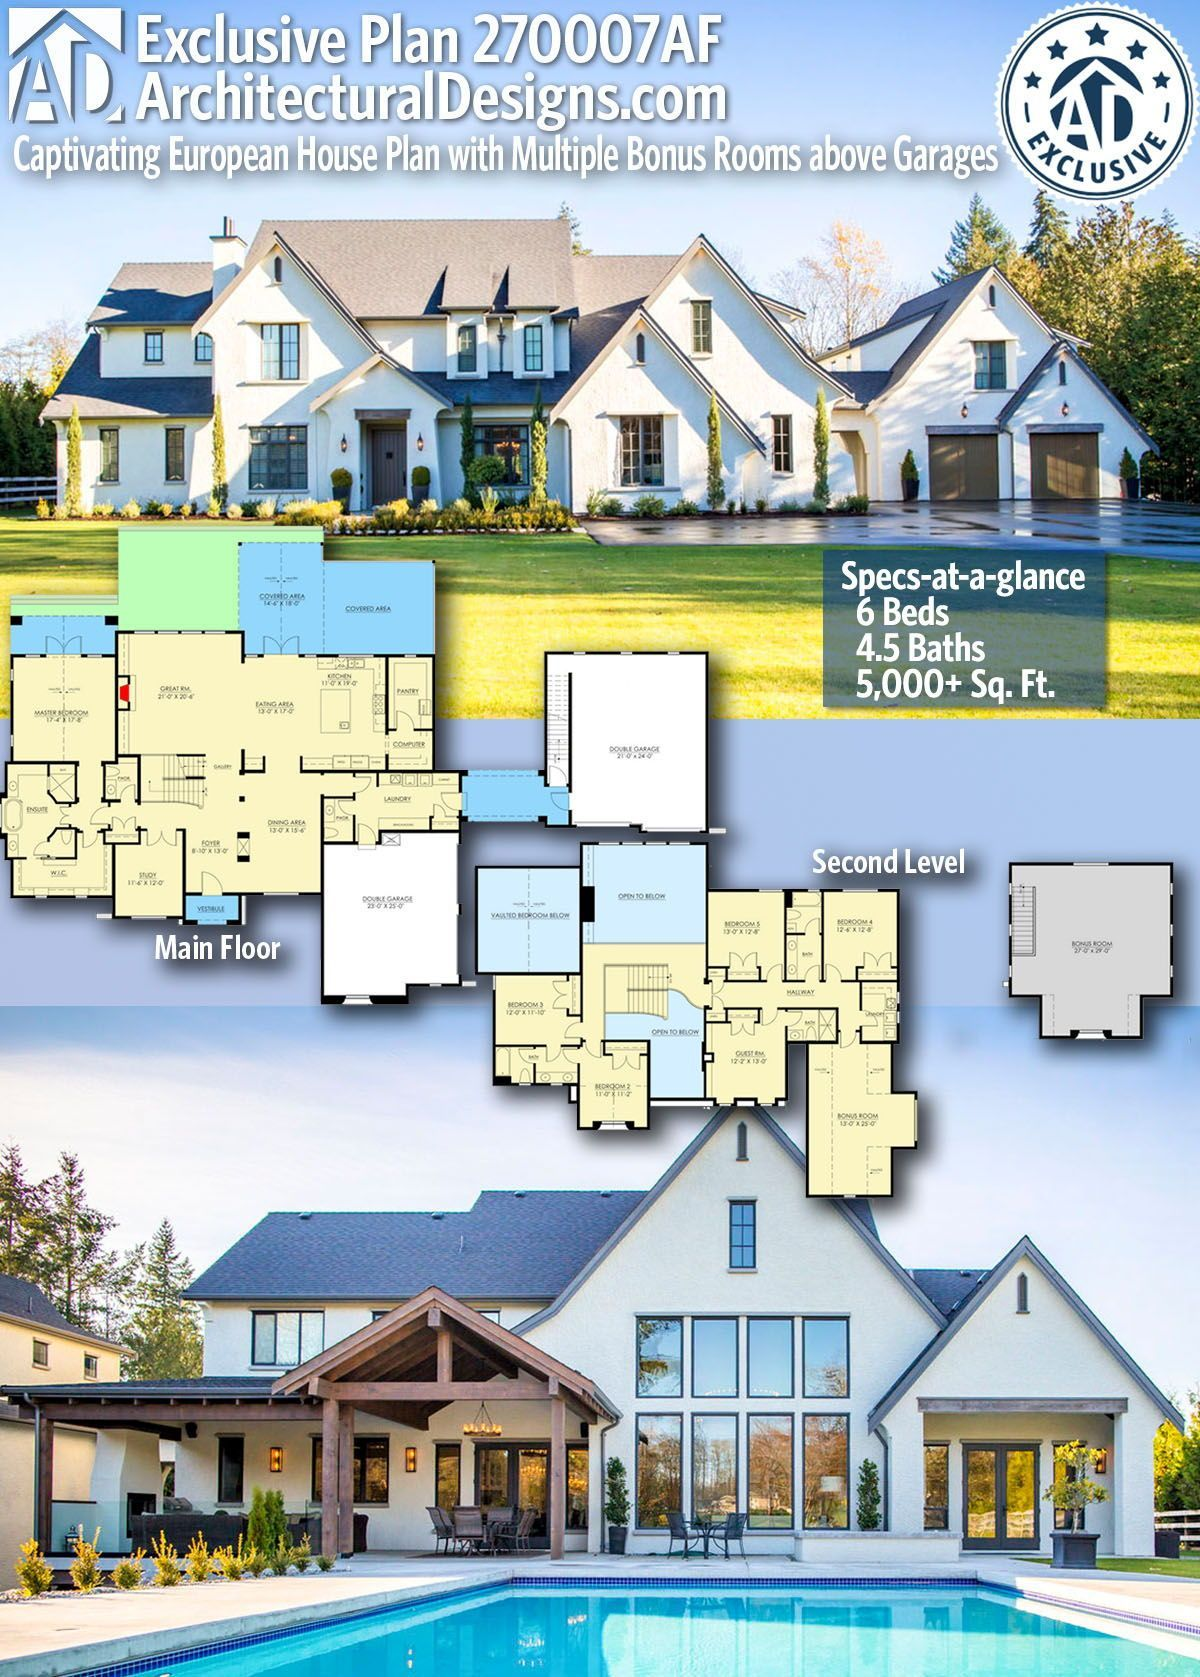 Architectural Designs Exclusive European Home Plan 270007af Gives You 6 Bedrooms Architectural Des In 2020 House Plans Farmhouse House Plans House Blueprints